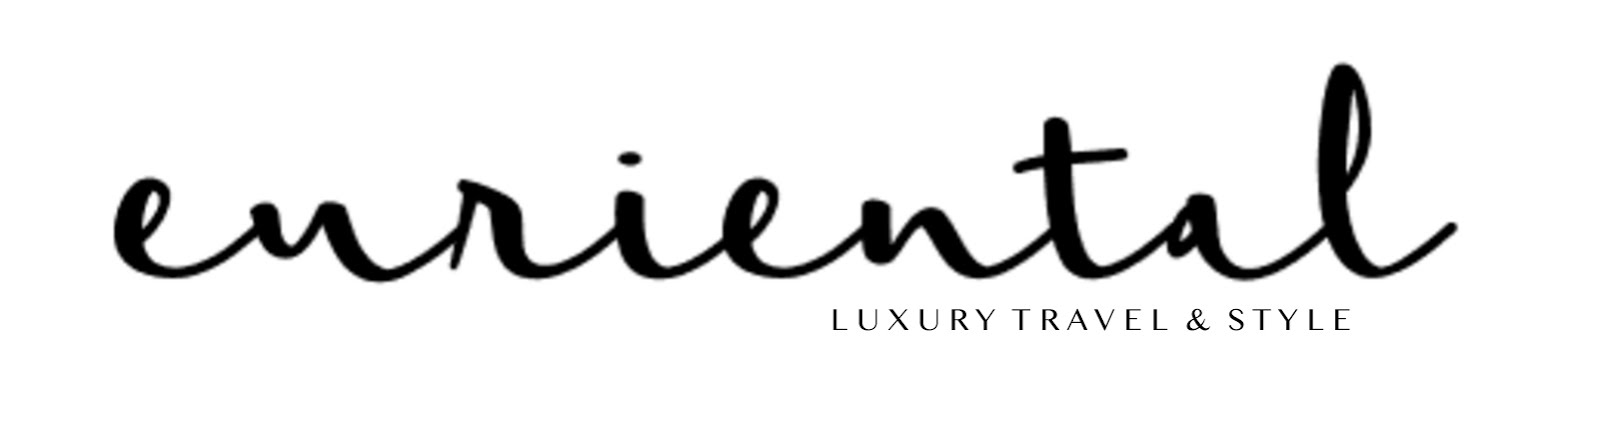 Euriental - fashion & luxury travel